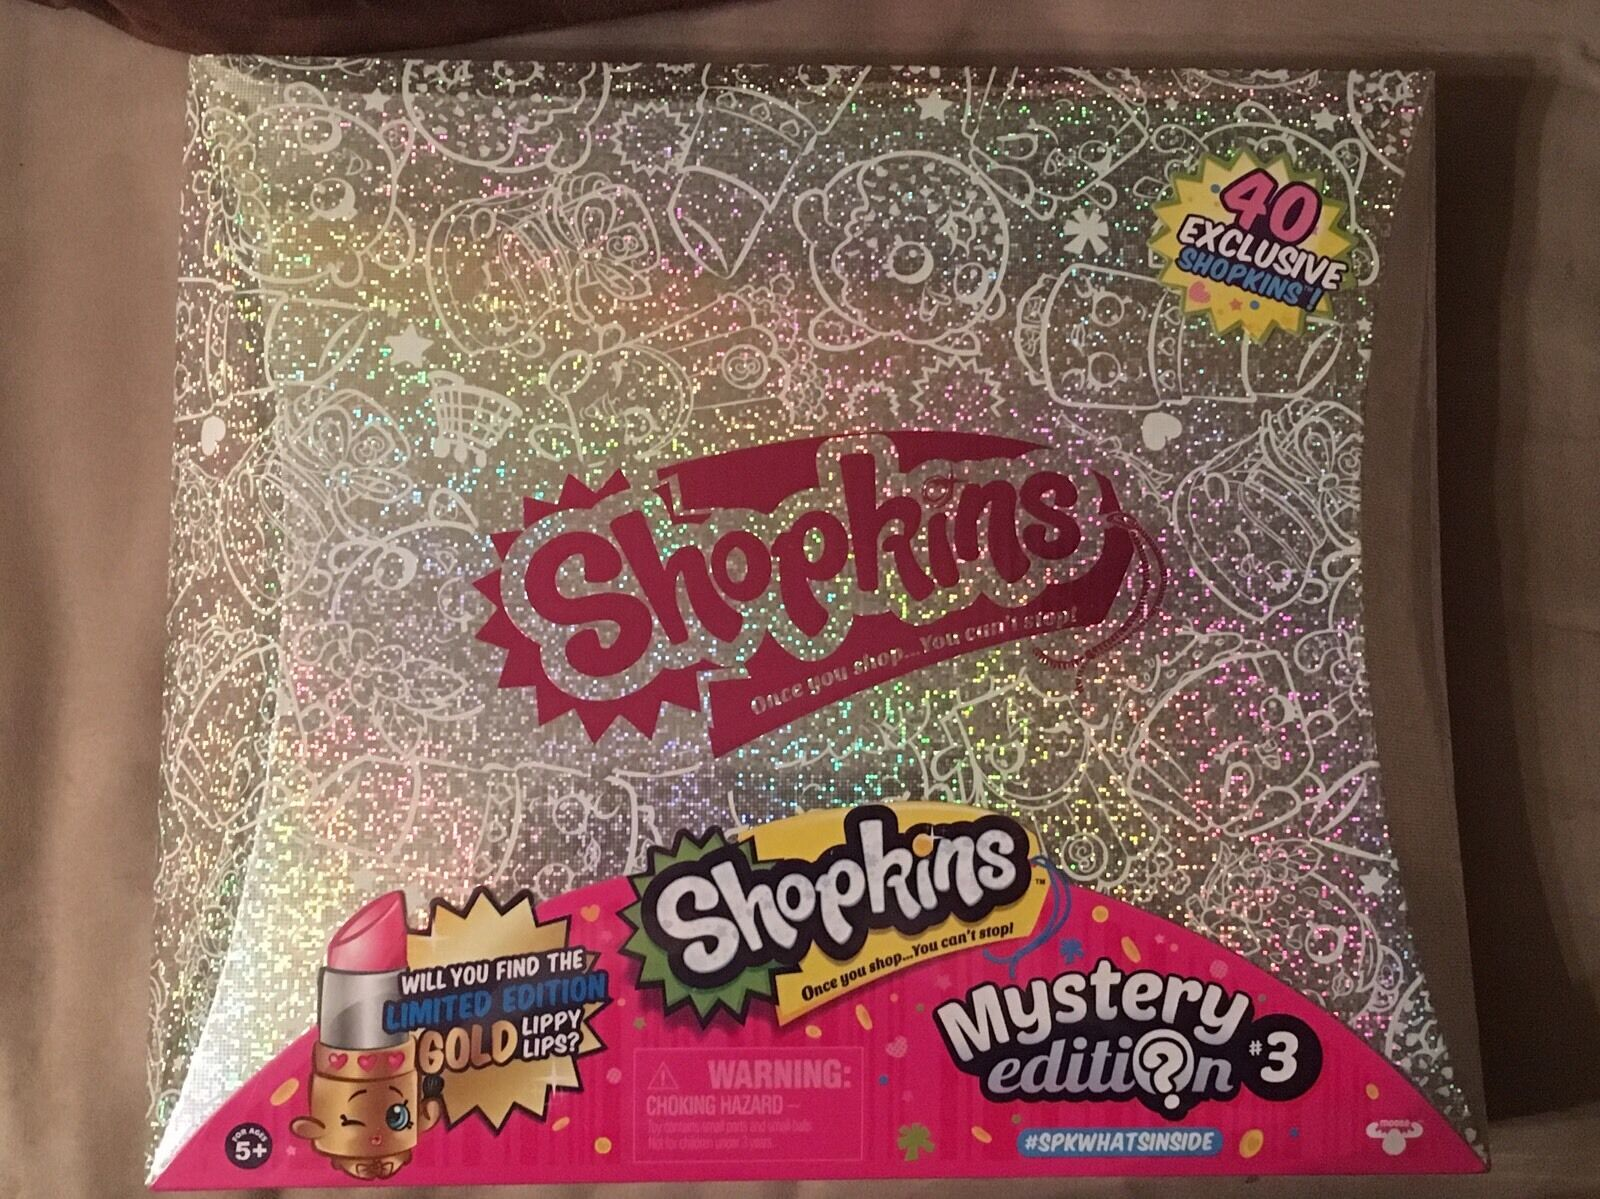 SHOPKINS MYSTERY EDITION 3.0 TARGET EXCLUSIVE 40 SHOPKINS GLITTER BOX BOX BOX NEW HTF b11624